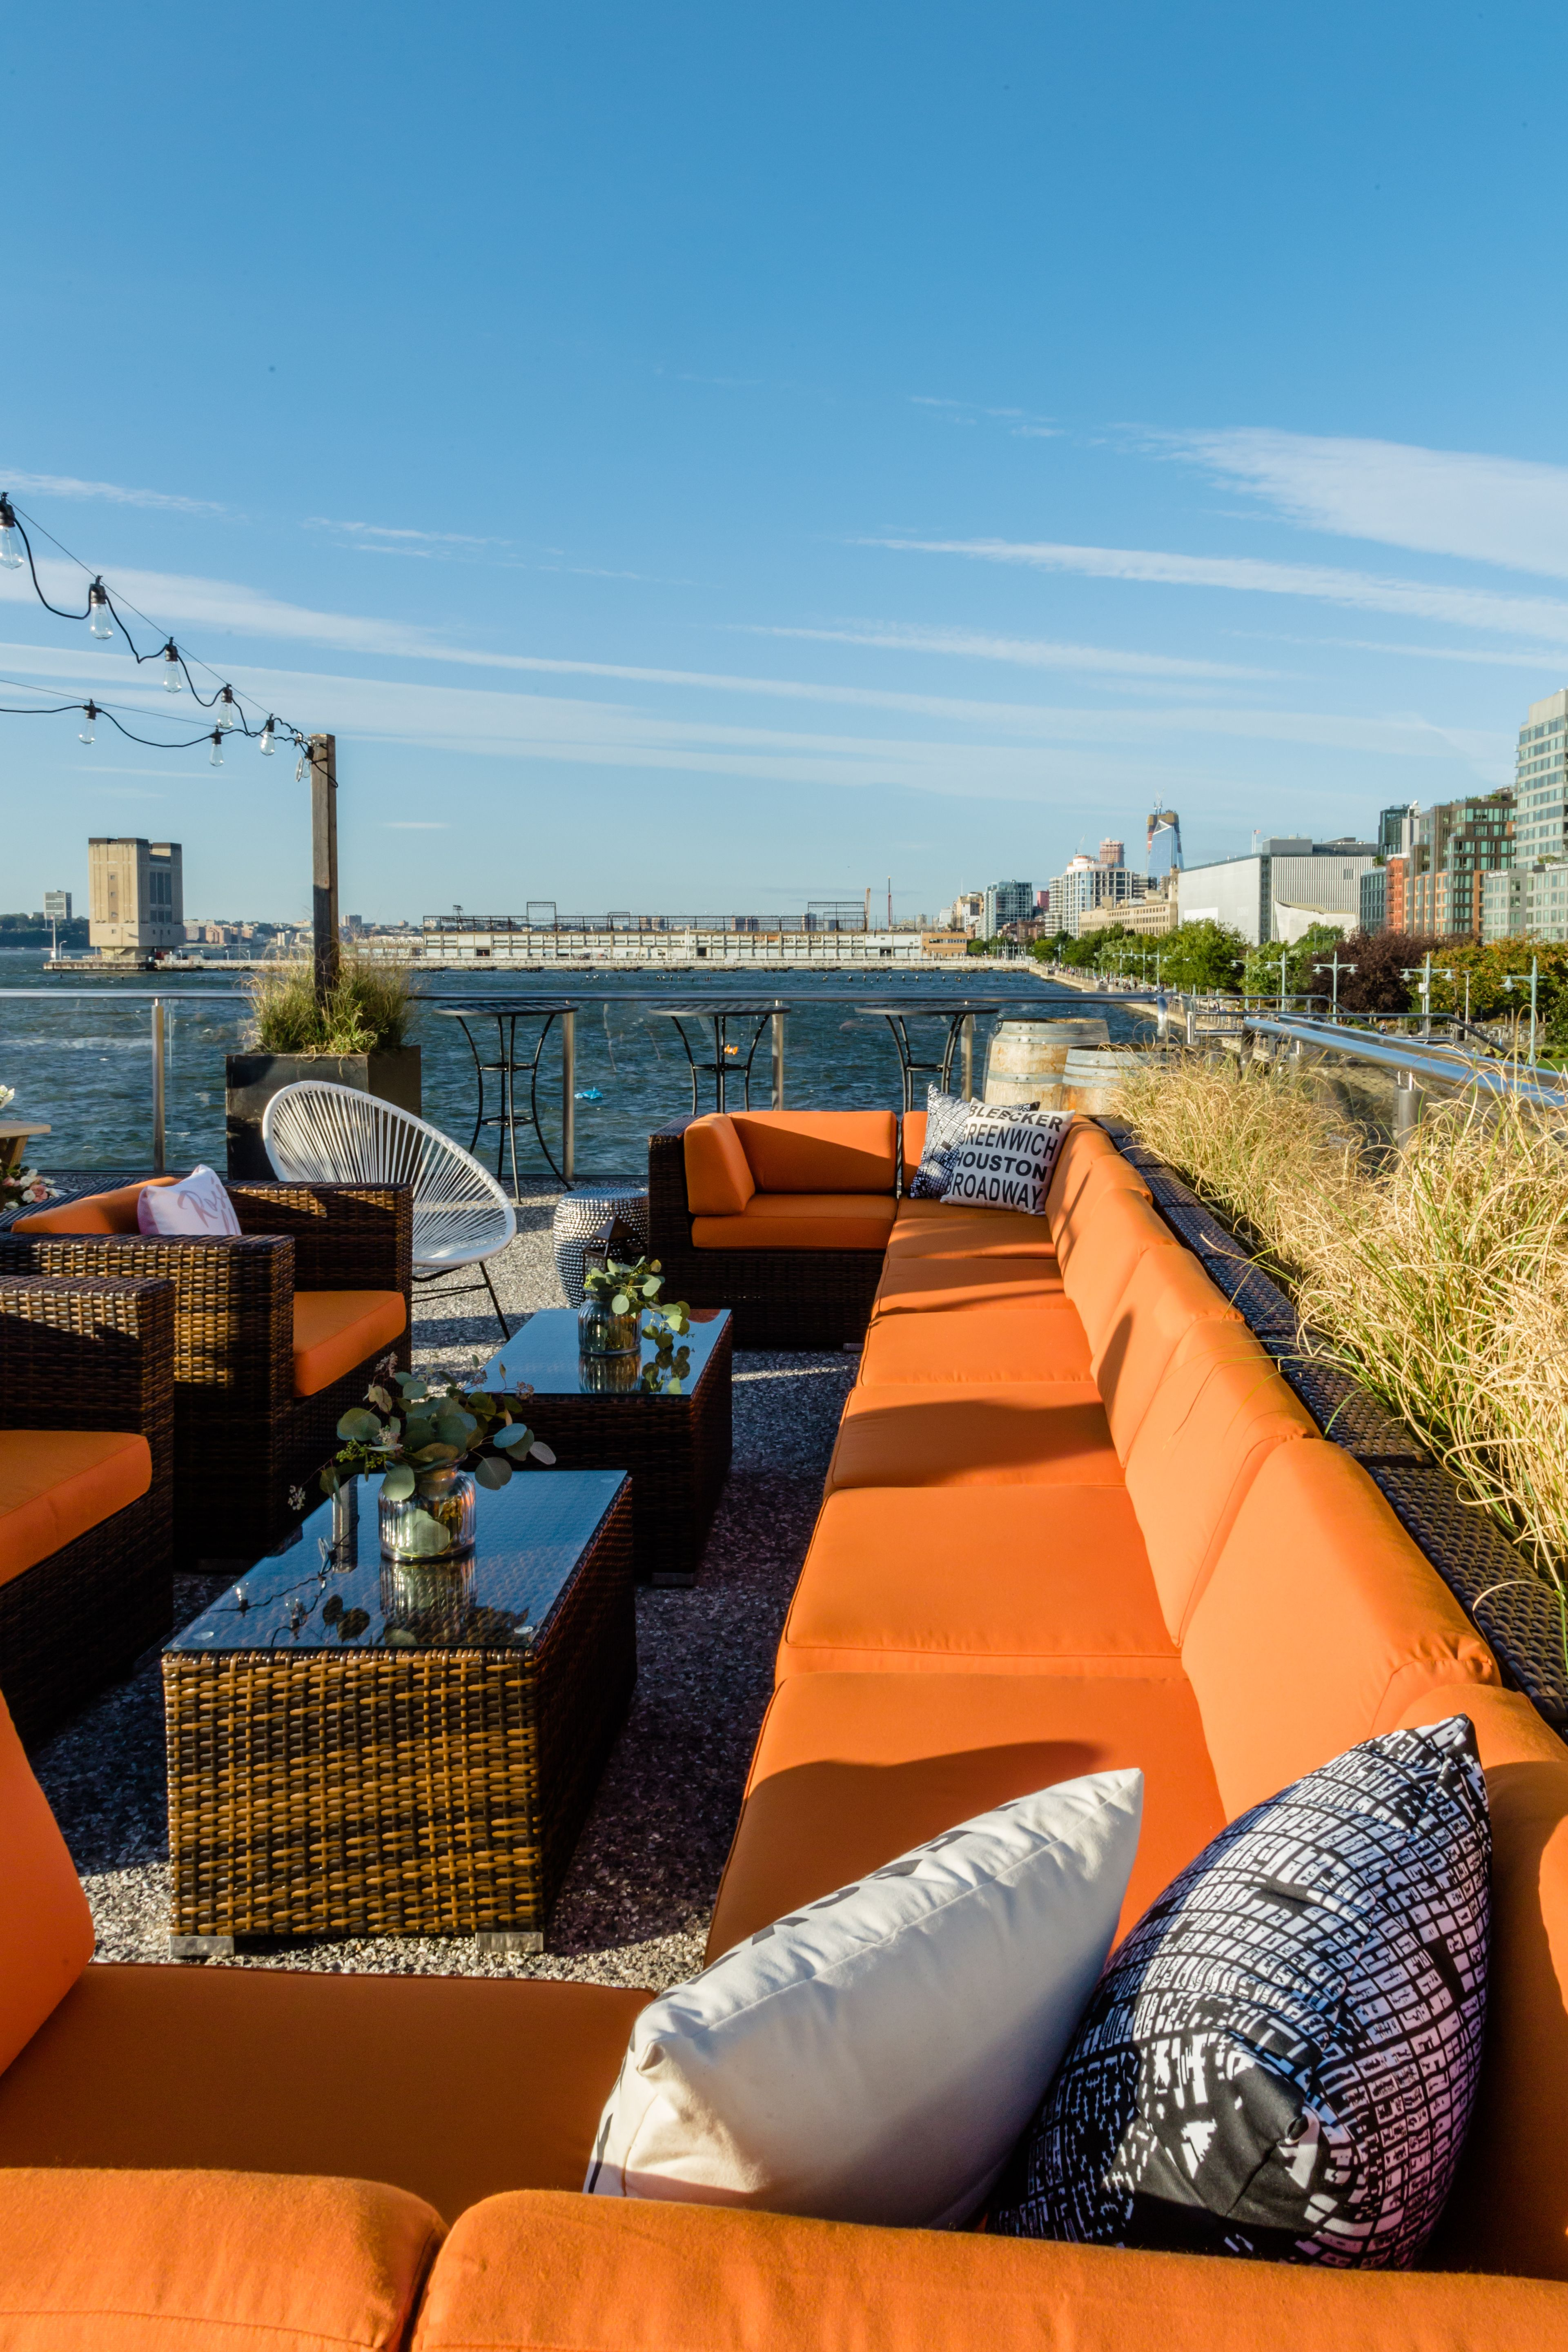 Tips To Make Your Rooftop Summer Ready Head Over To The Link To Read More Wayfairprofessional Rooftopdecor Rooftop Dining Outdoor Seating Set Rooftop Decor